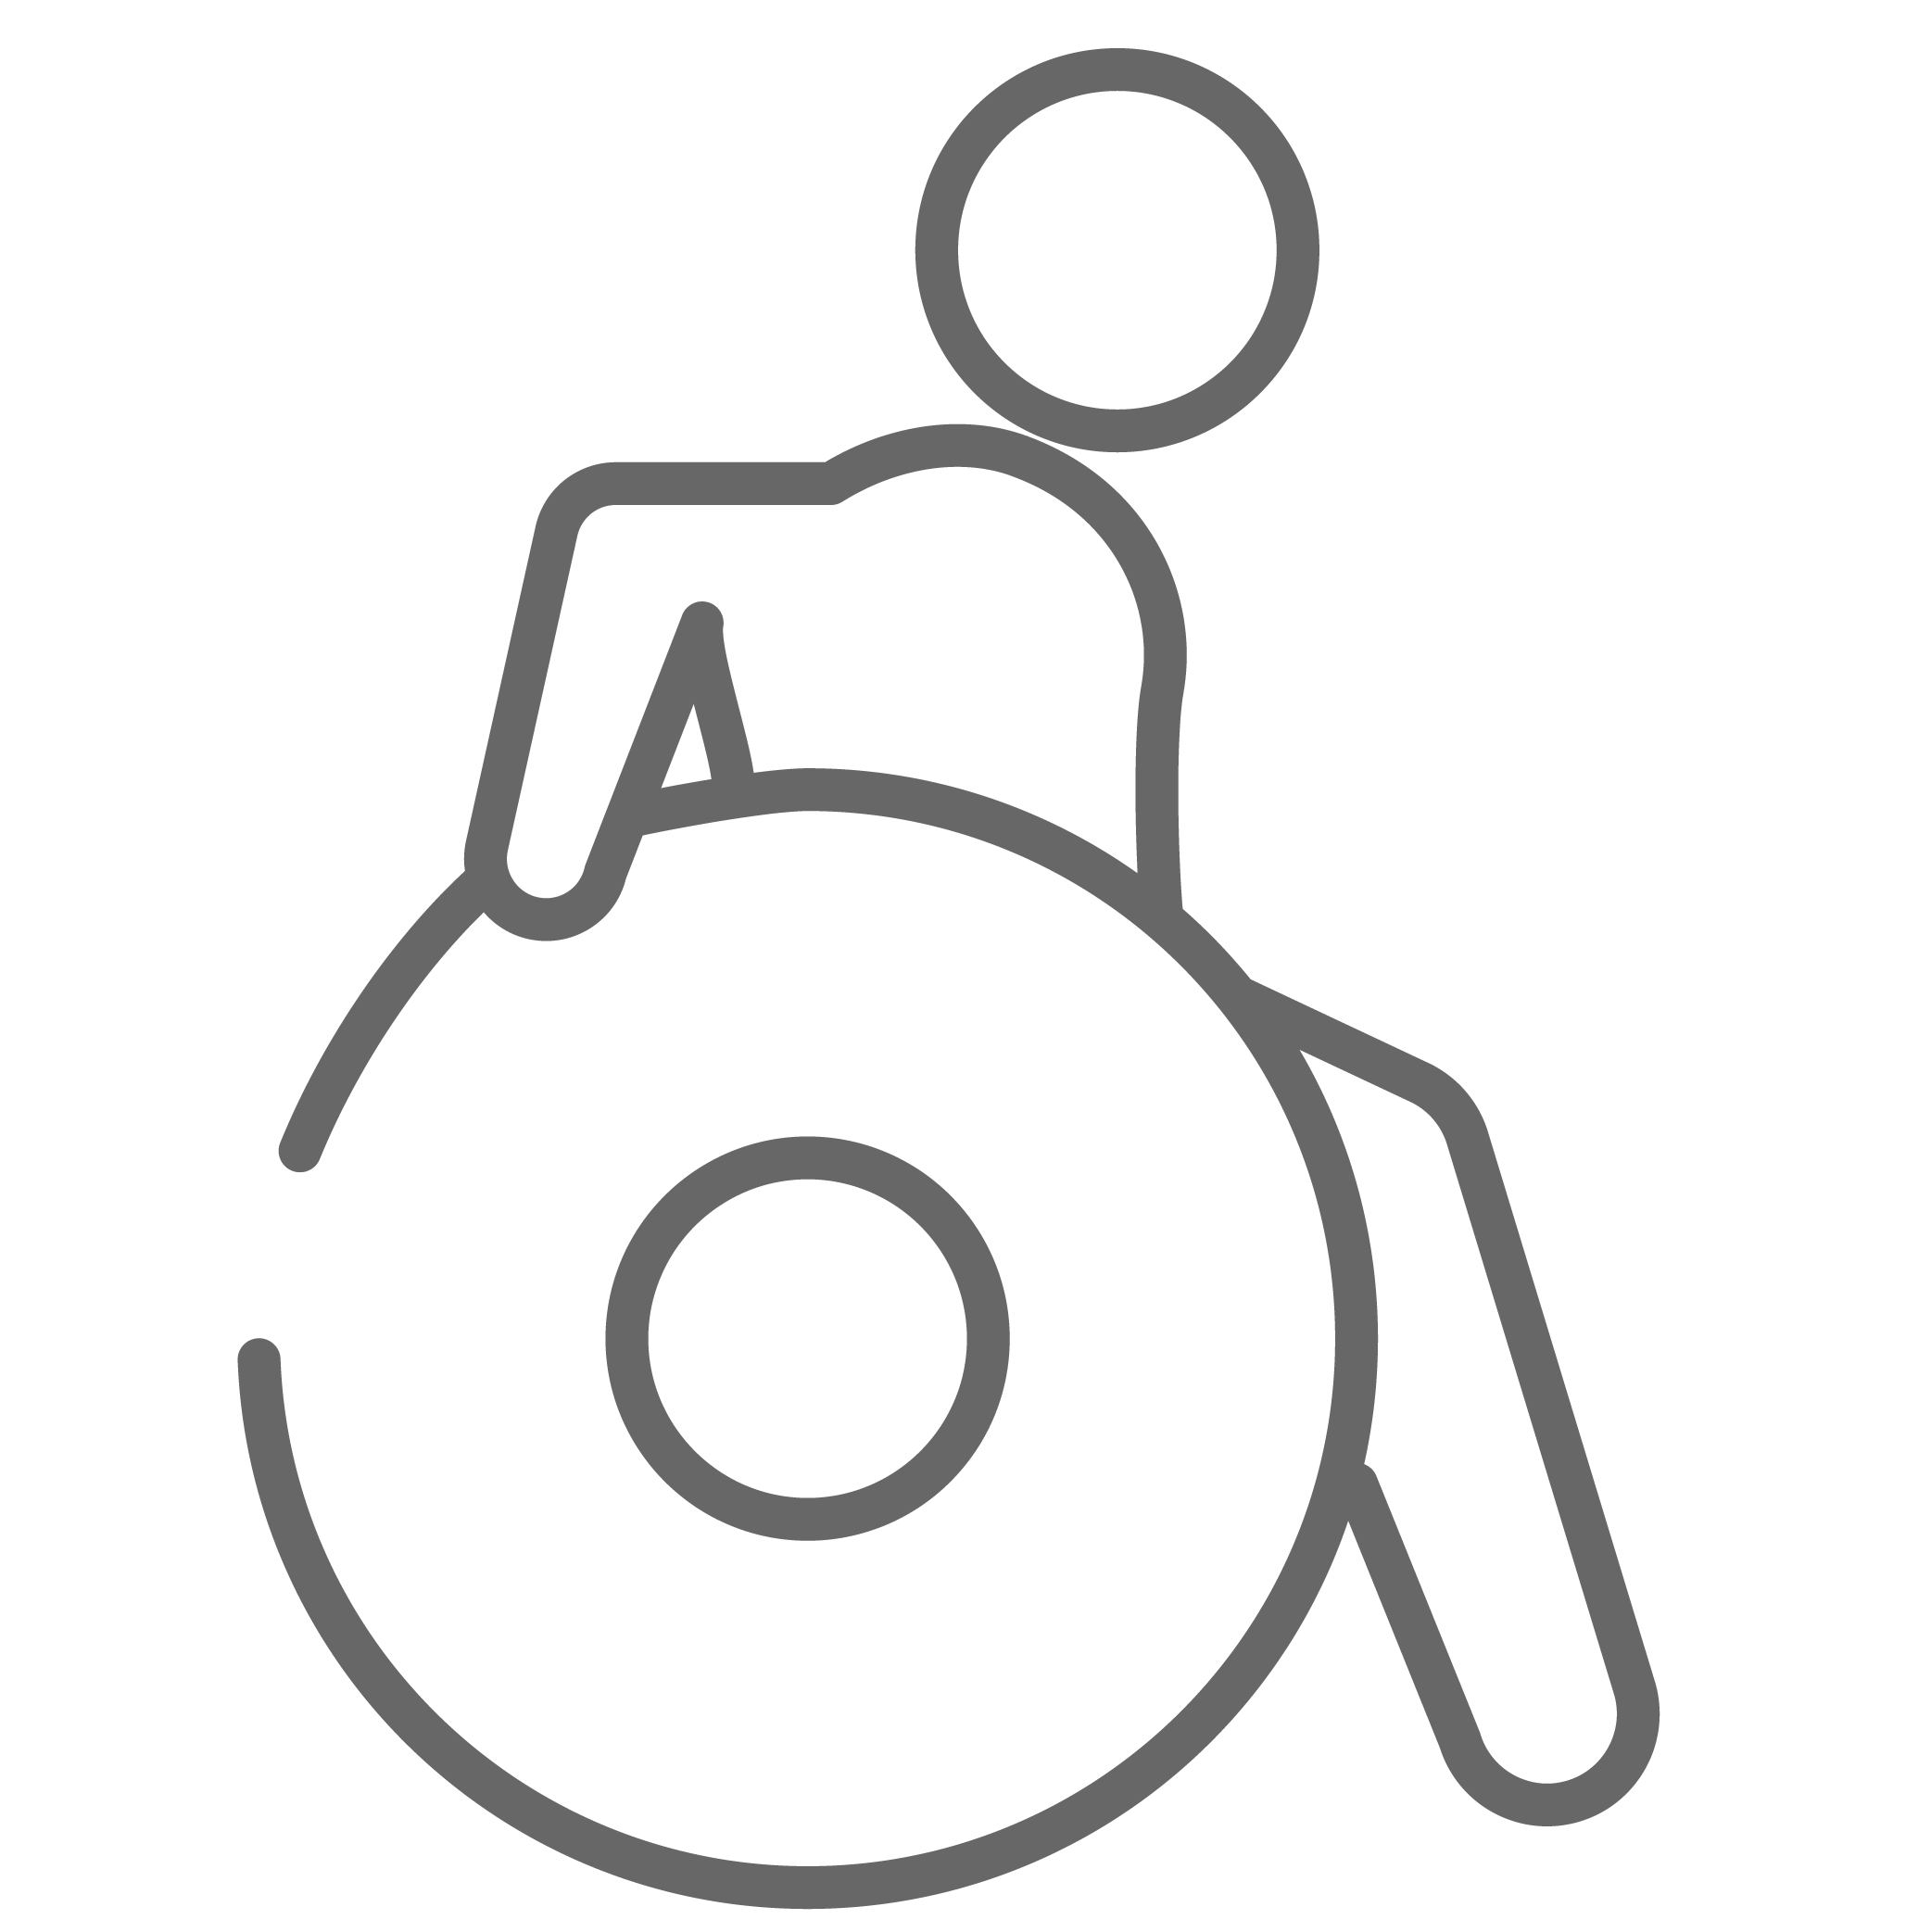 Outline of a person in a wheelchair